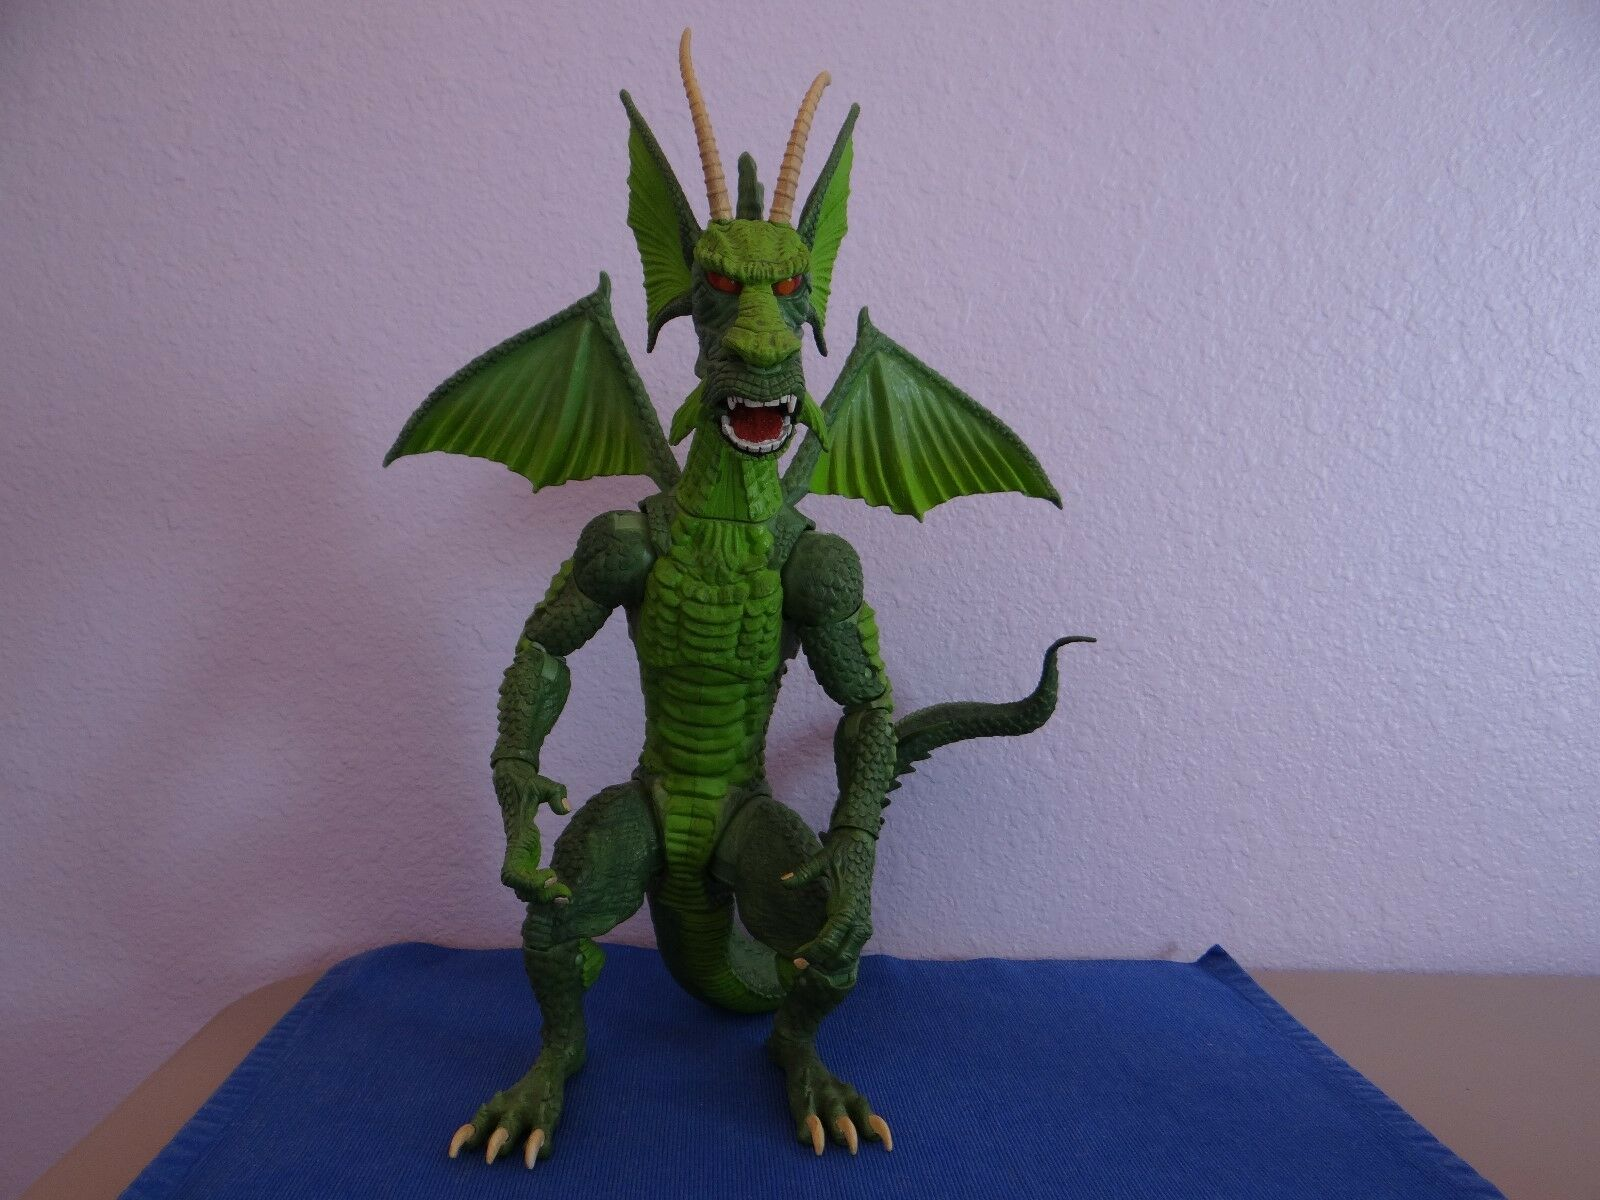 Fin Fang Foom BAF Marvel Legends Legends Legends Hasbro (Perfect Paint & Tight Joints) c9d20d